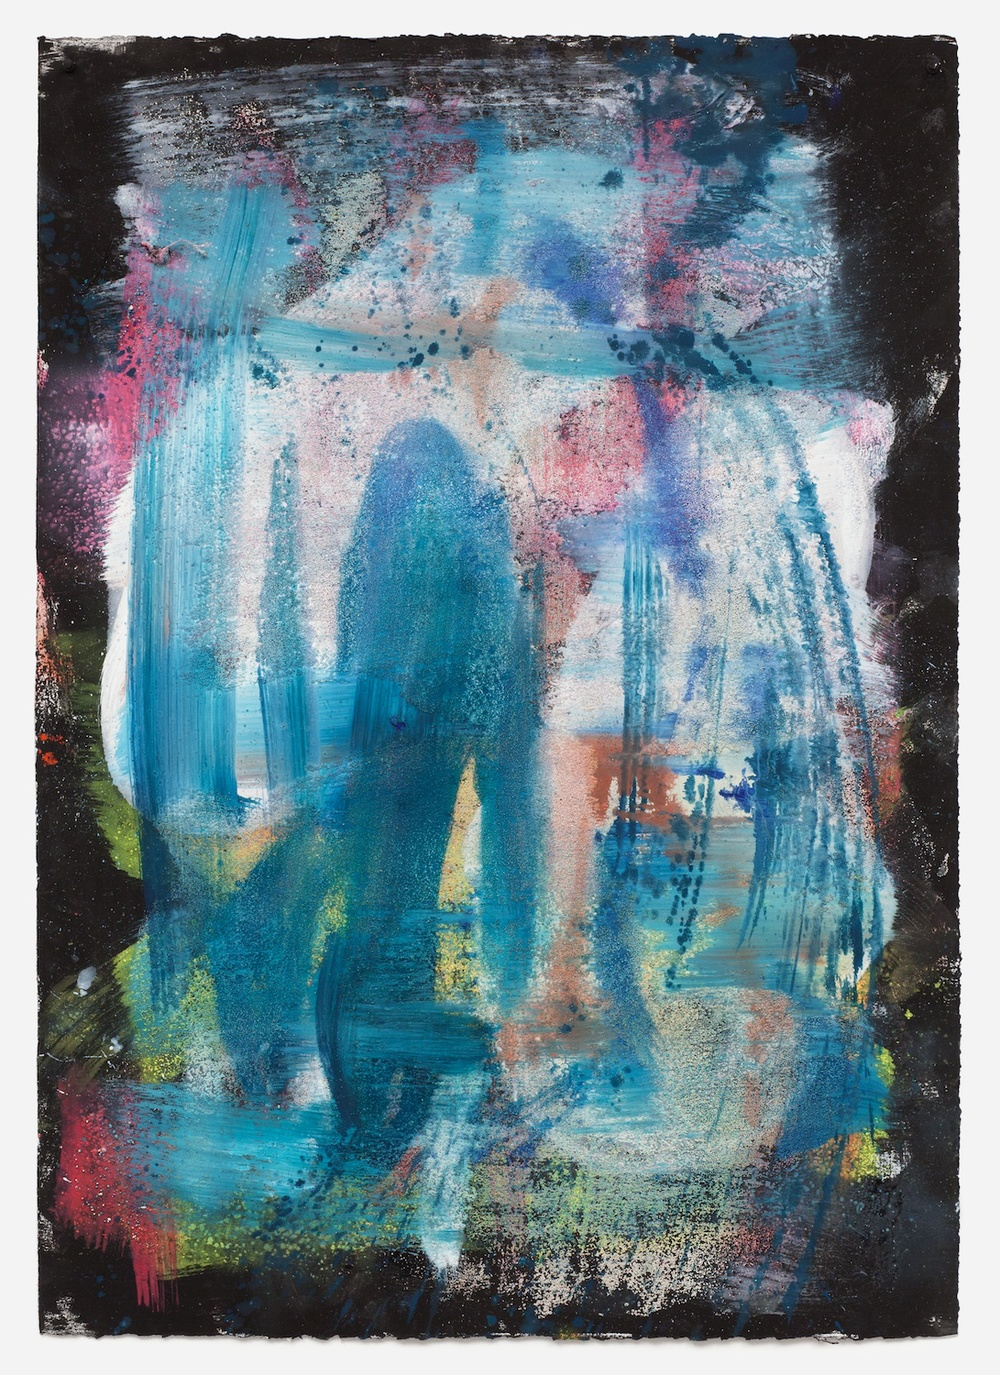 Jon Pestoni  Untitled  2013 Oil and mixed media on paper 40h x 30w in JP139